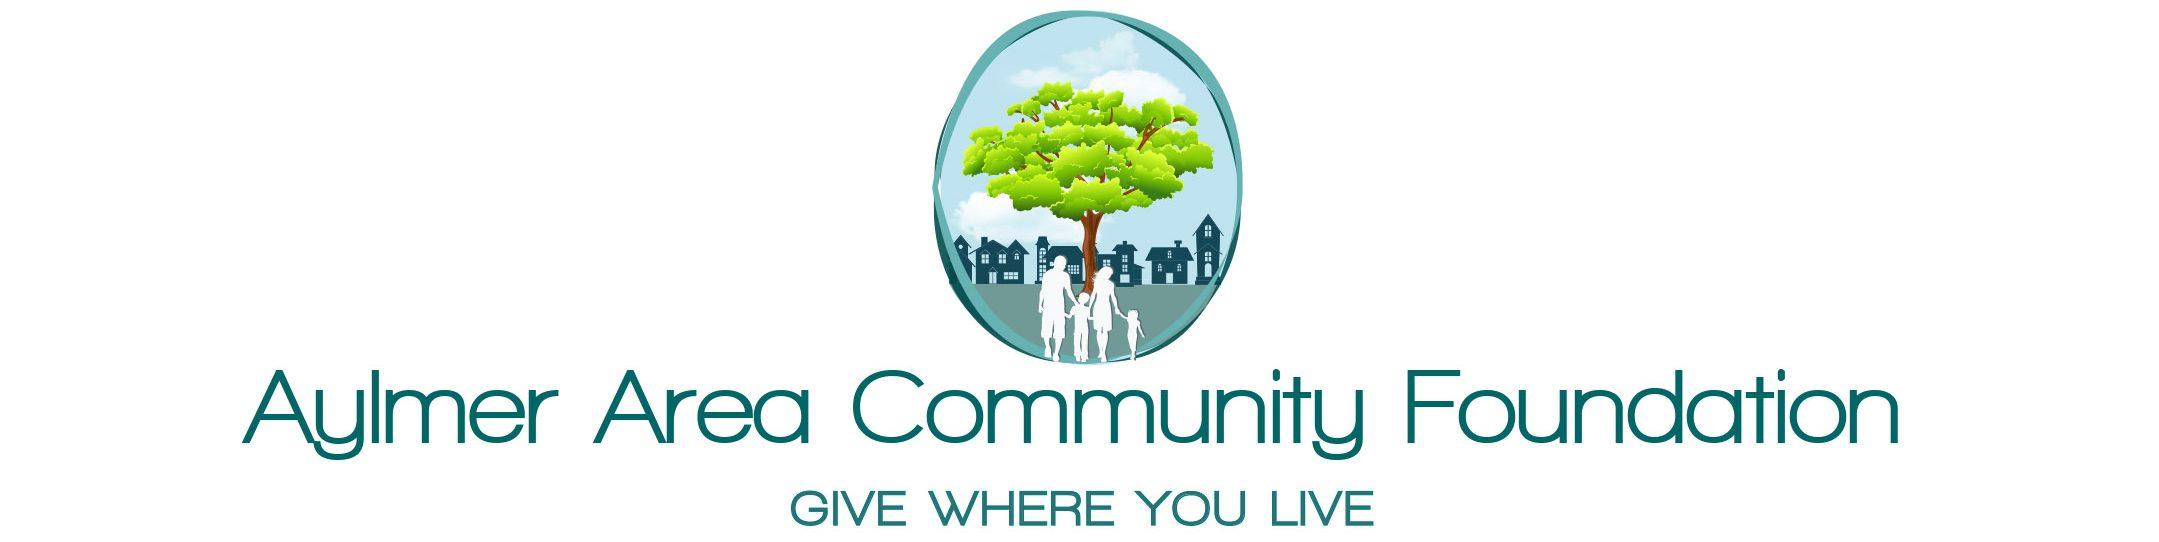 Aylmer Area Community Foundation